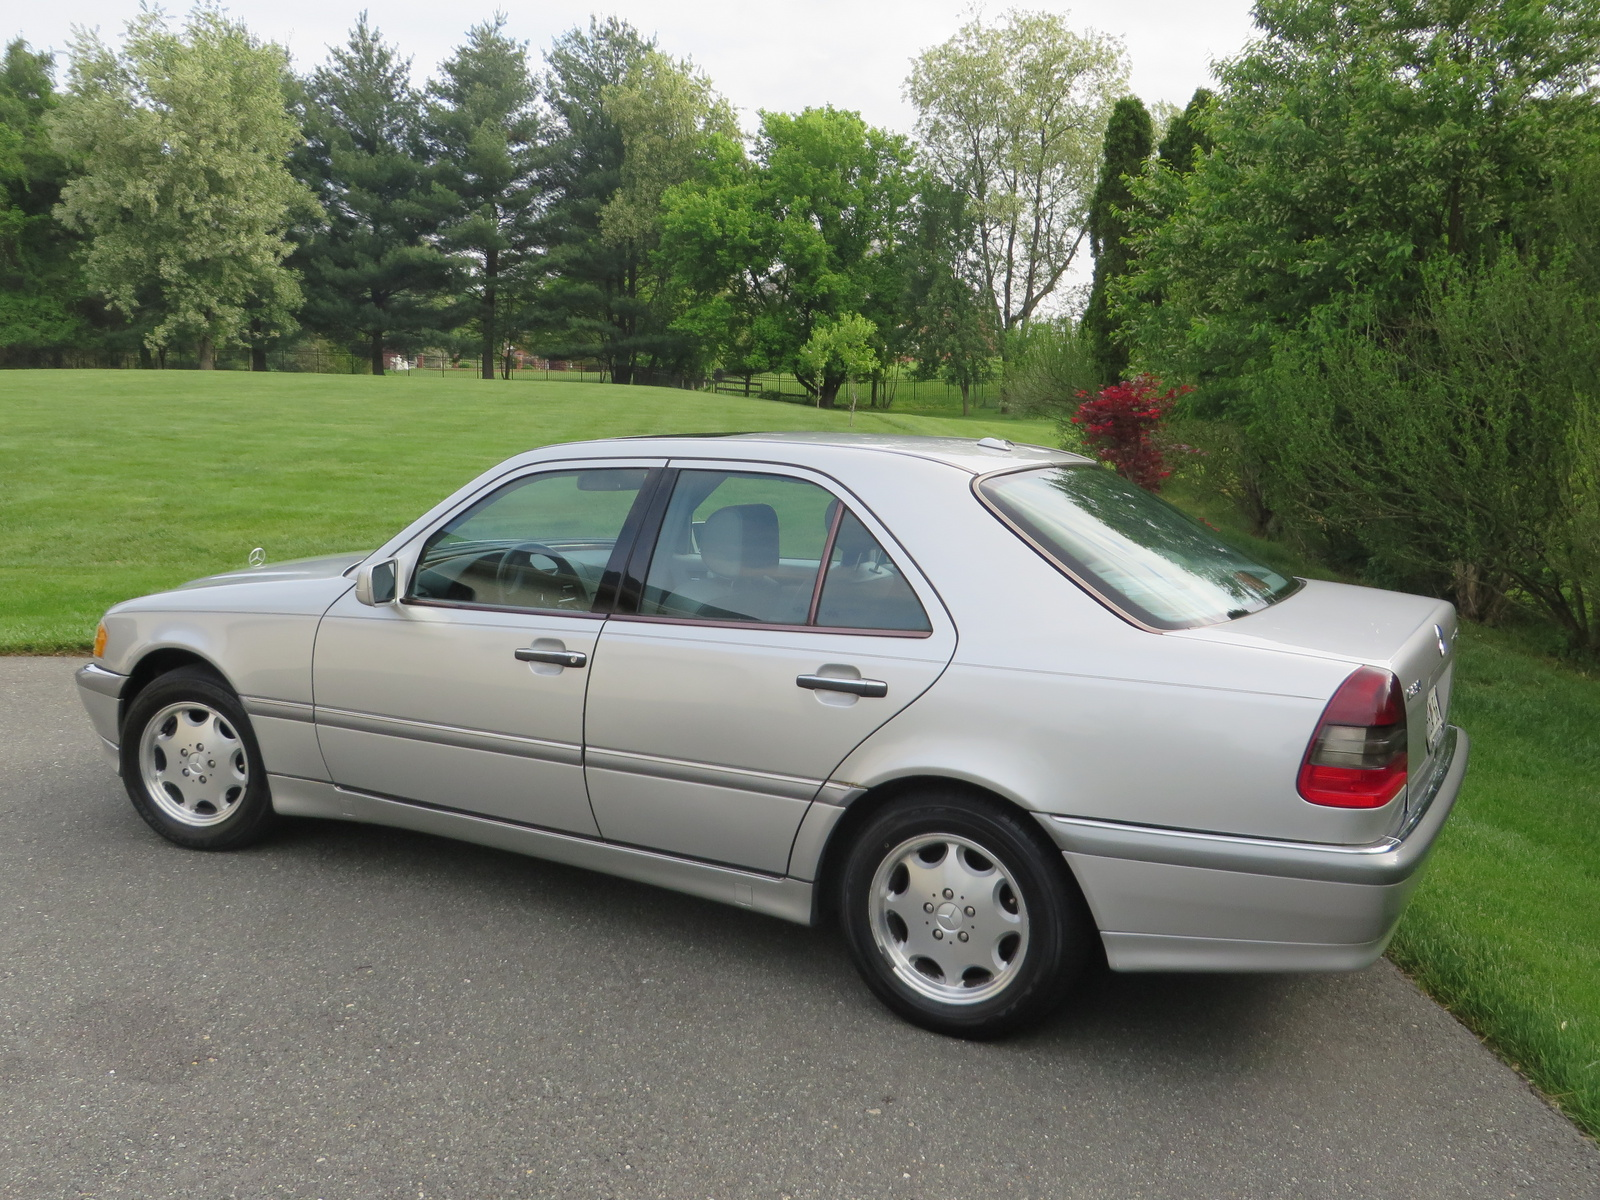 Picture of 2000 mercedes benz c class 4 dr c230 for Mercedes benz c class 2000